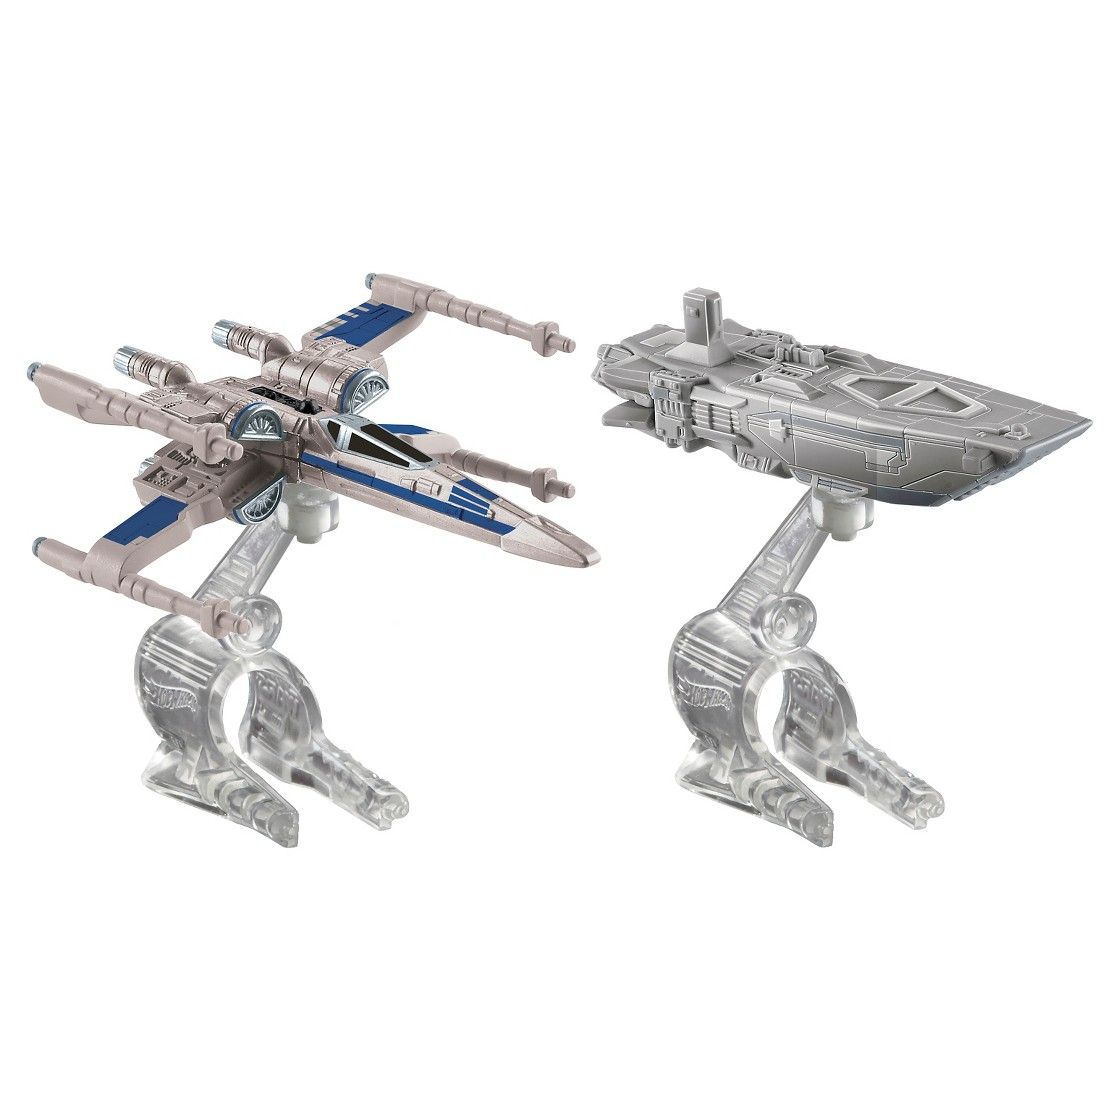 The Force Awakens First Order TIE Fighter vs Hot Wheels Star Wars Millennium Falcon Starship